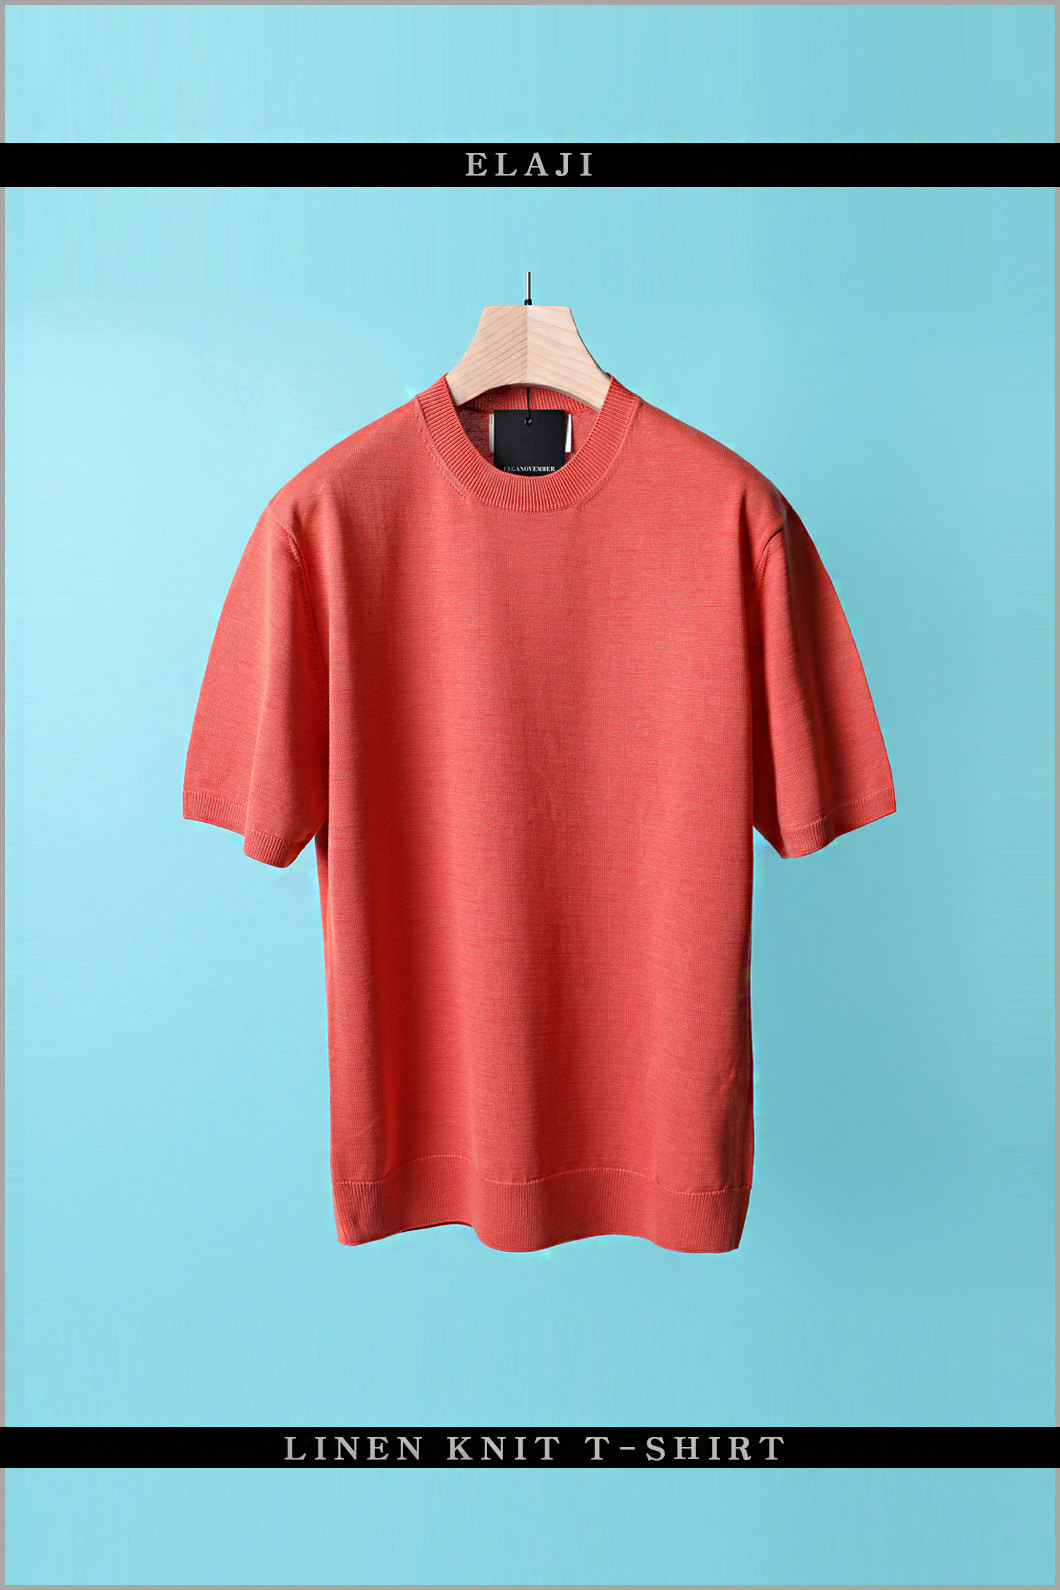 ELAJI LINEN KNIT T-SHIRT-14COLOR